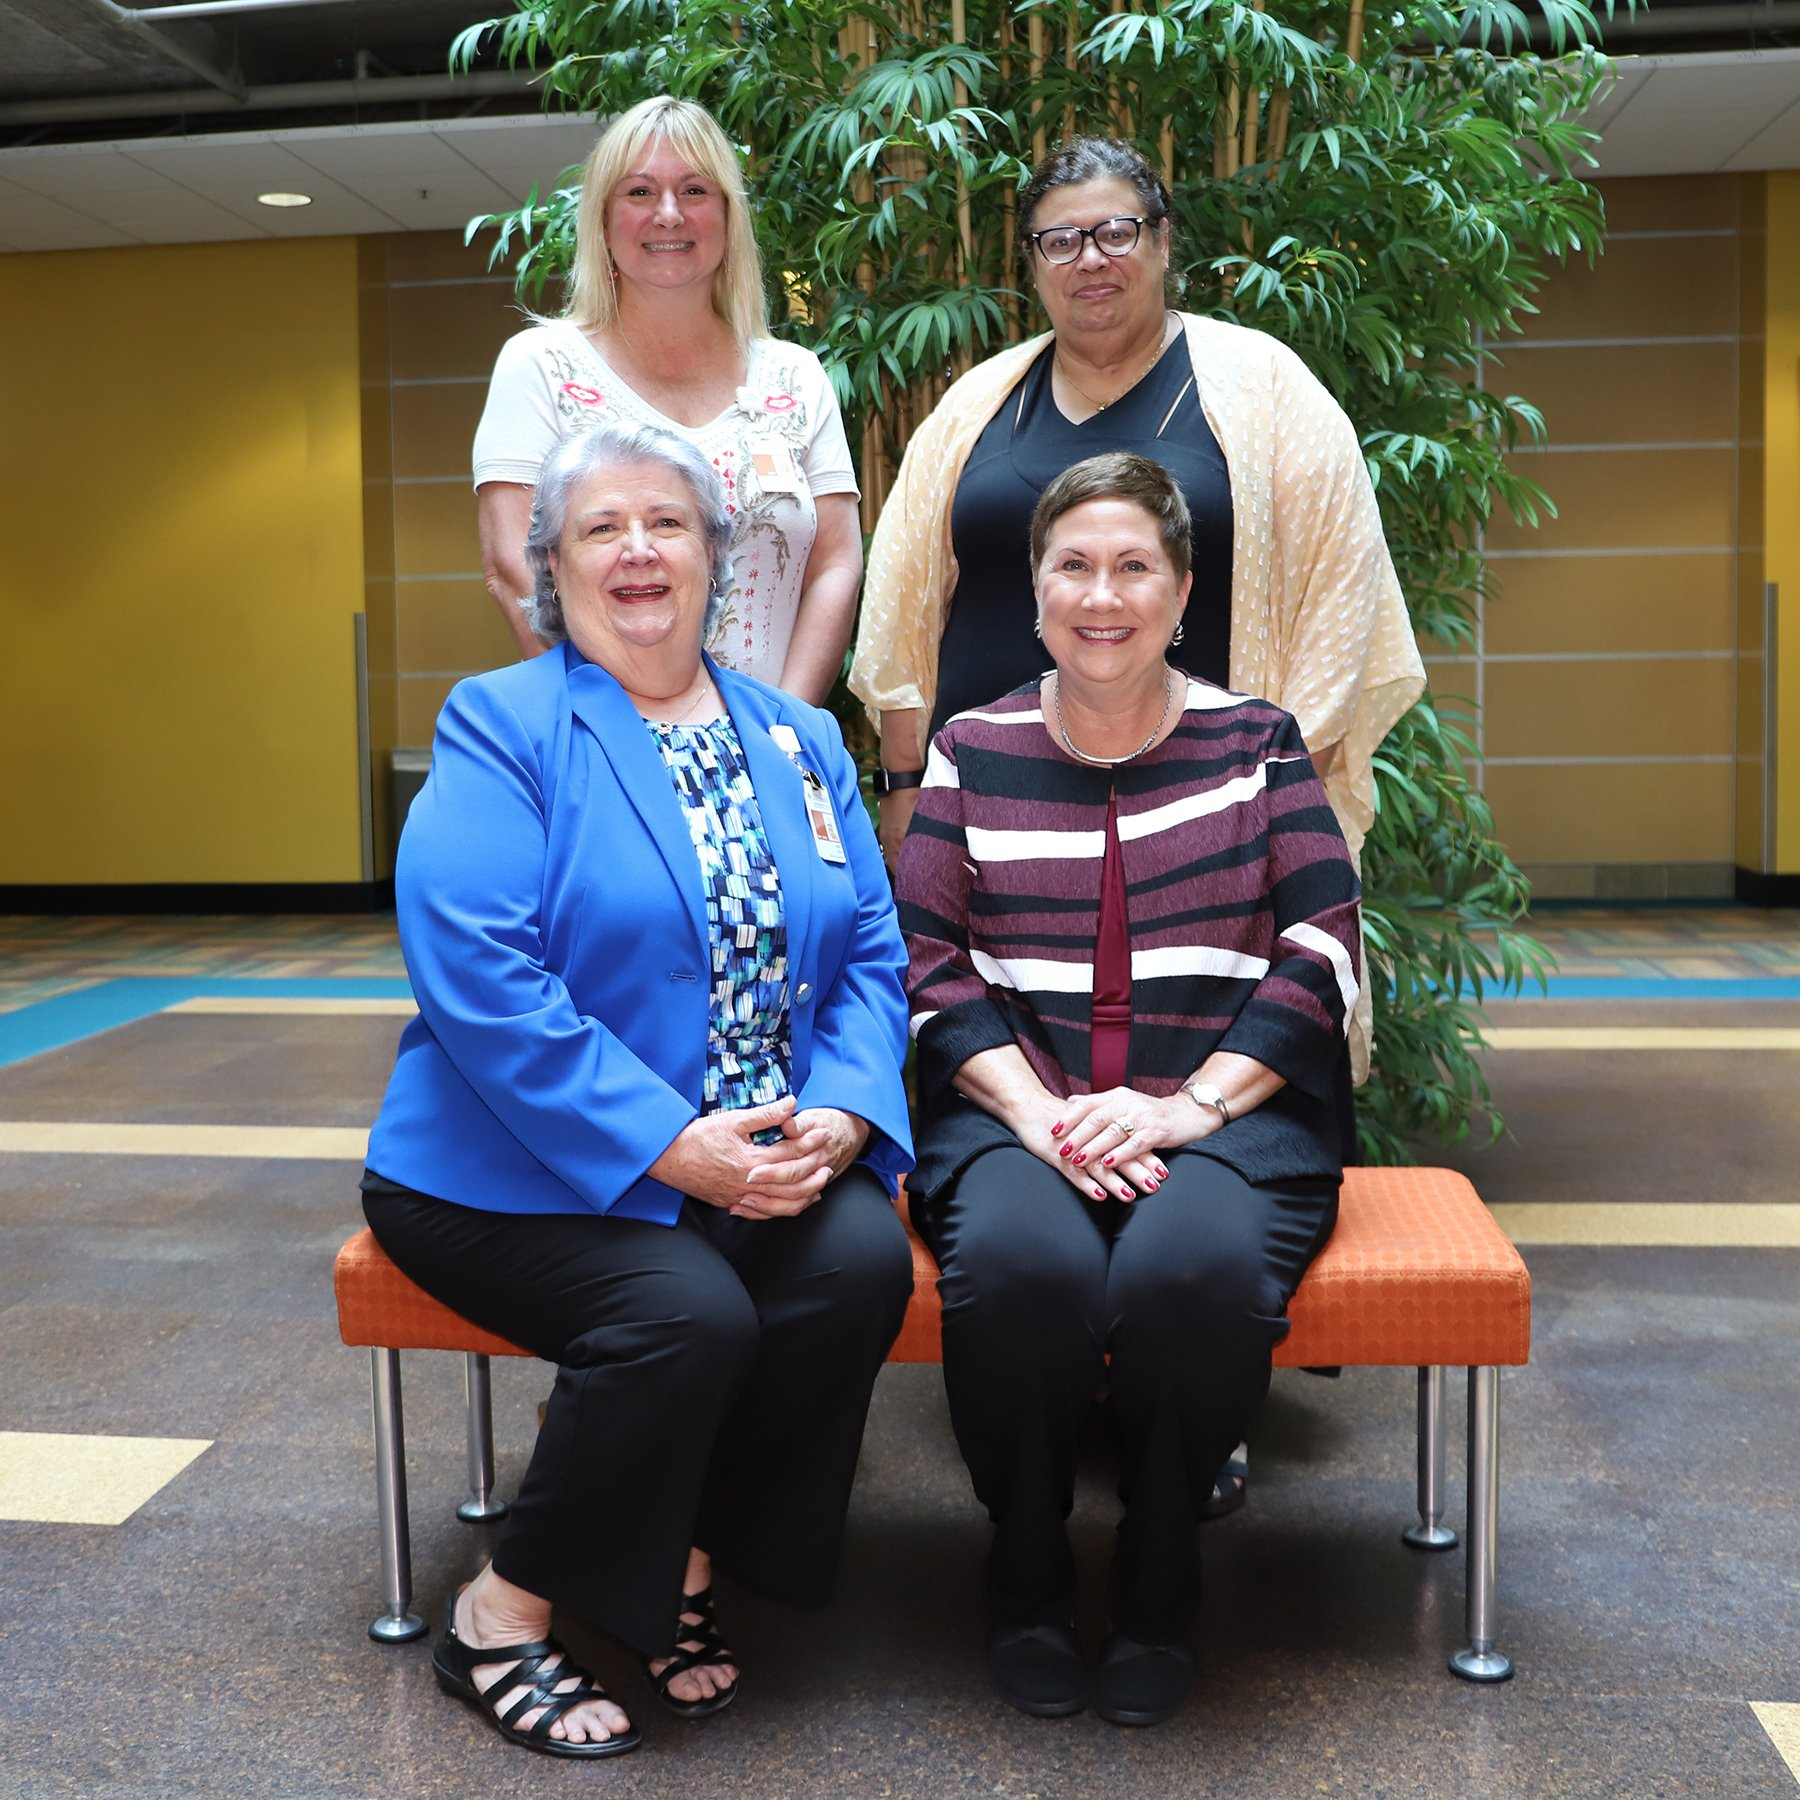 Pictured clockwise from top left are Dr. Tammy Stout, Dr. Carole Mackavey, Dr. Susan Ruppert, and Dr. Linda Cole.